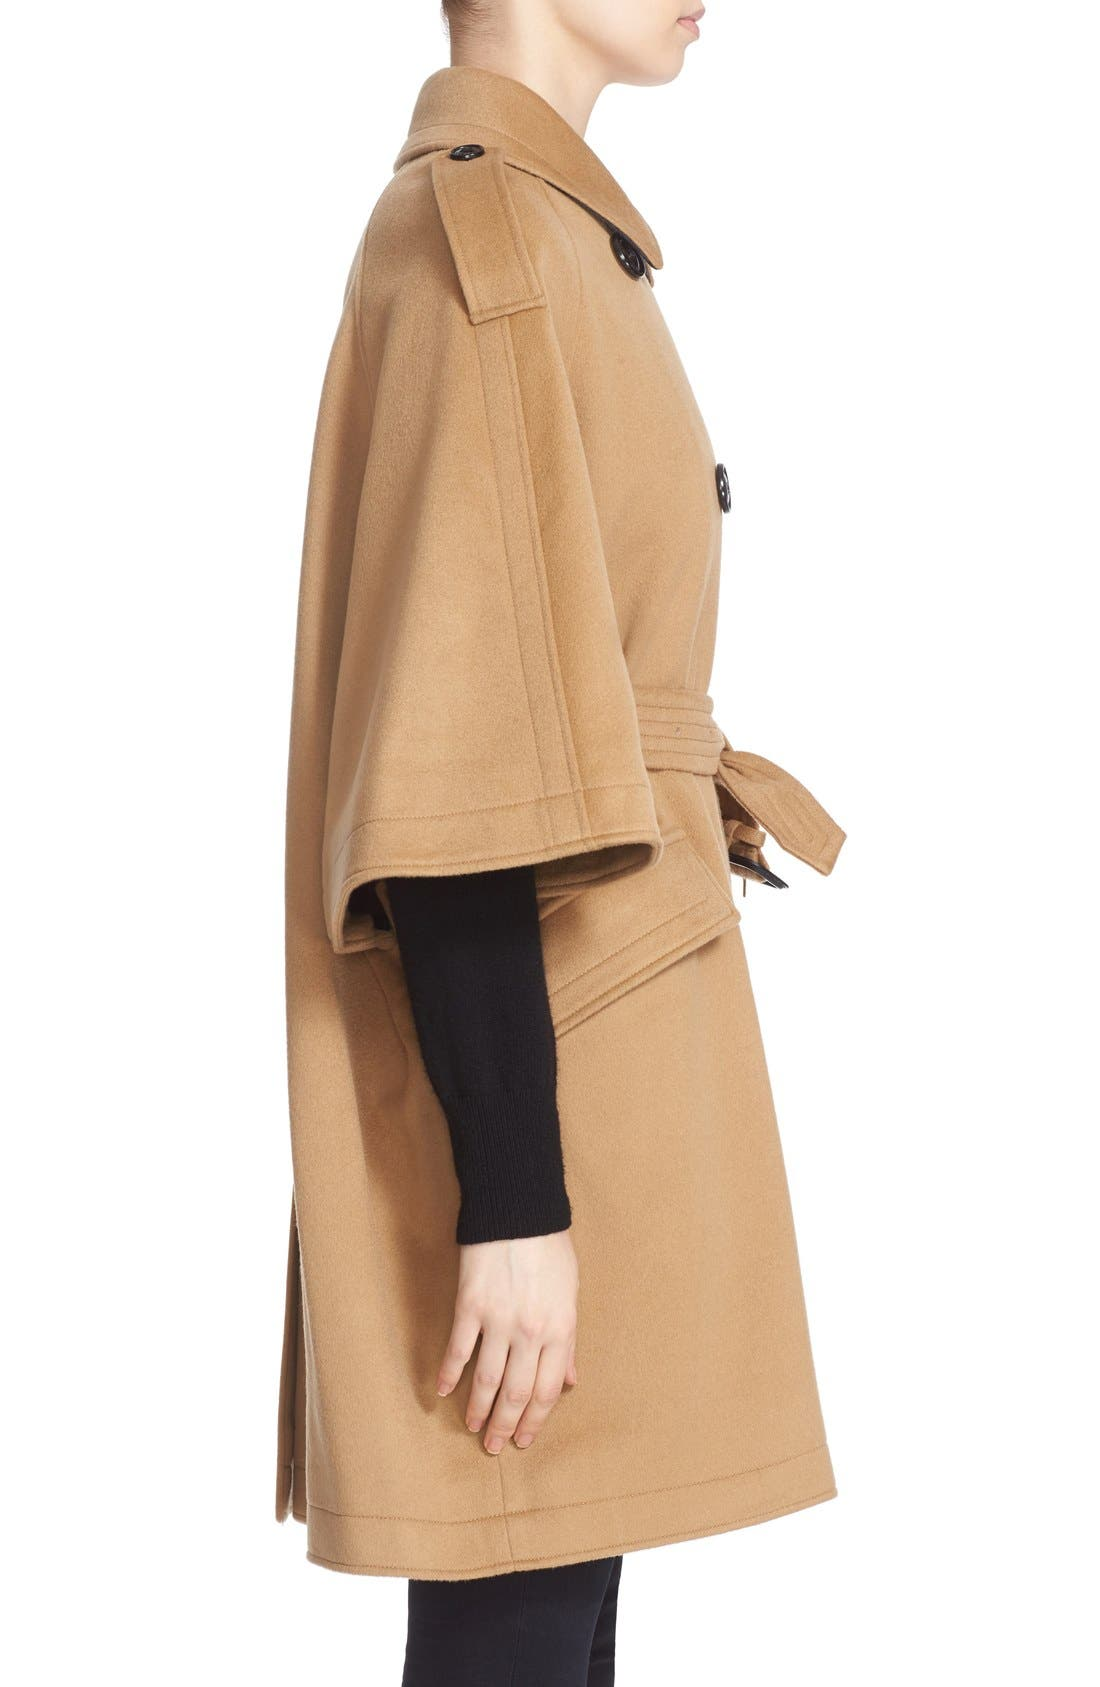 Dennington Trench Cape Coat,                             Alternate thumbnail 6, color,                             231